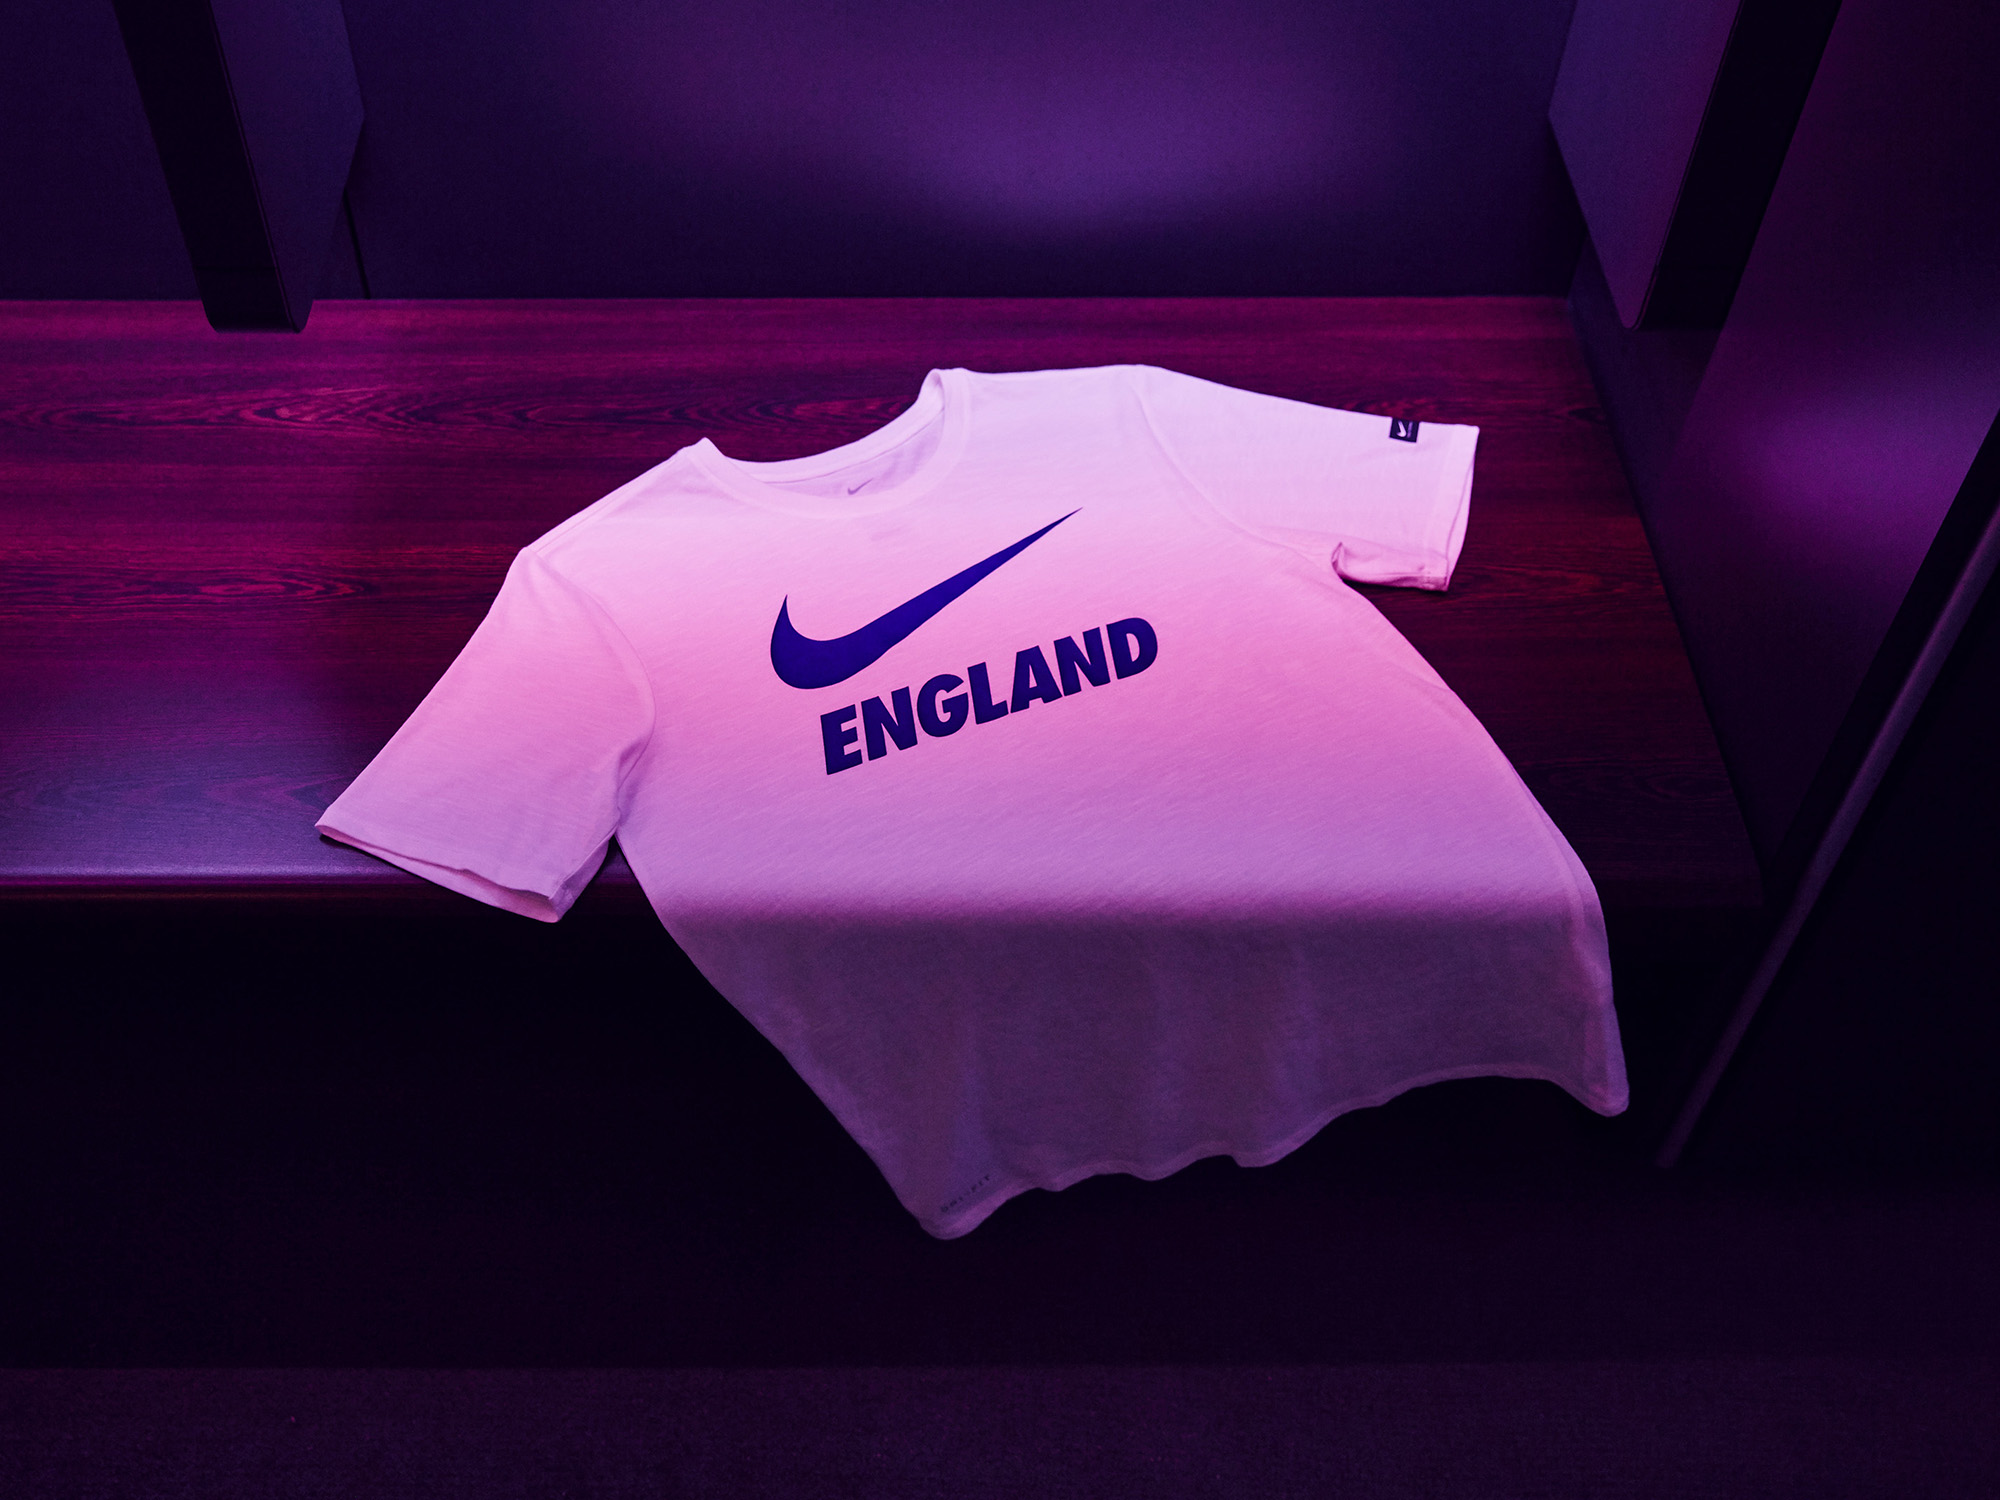 Nike-News-Football-Soccer-England-National-Team-Kit-14_77385